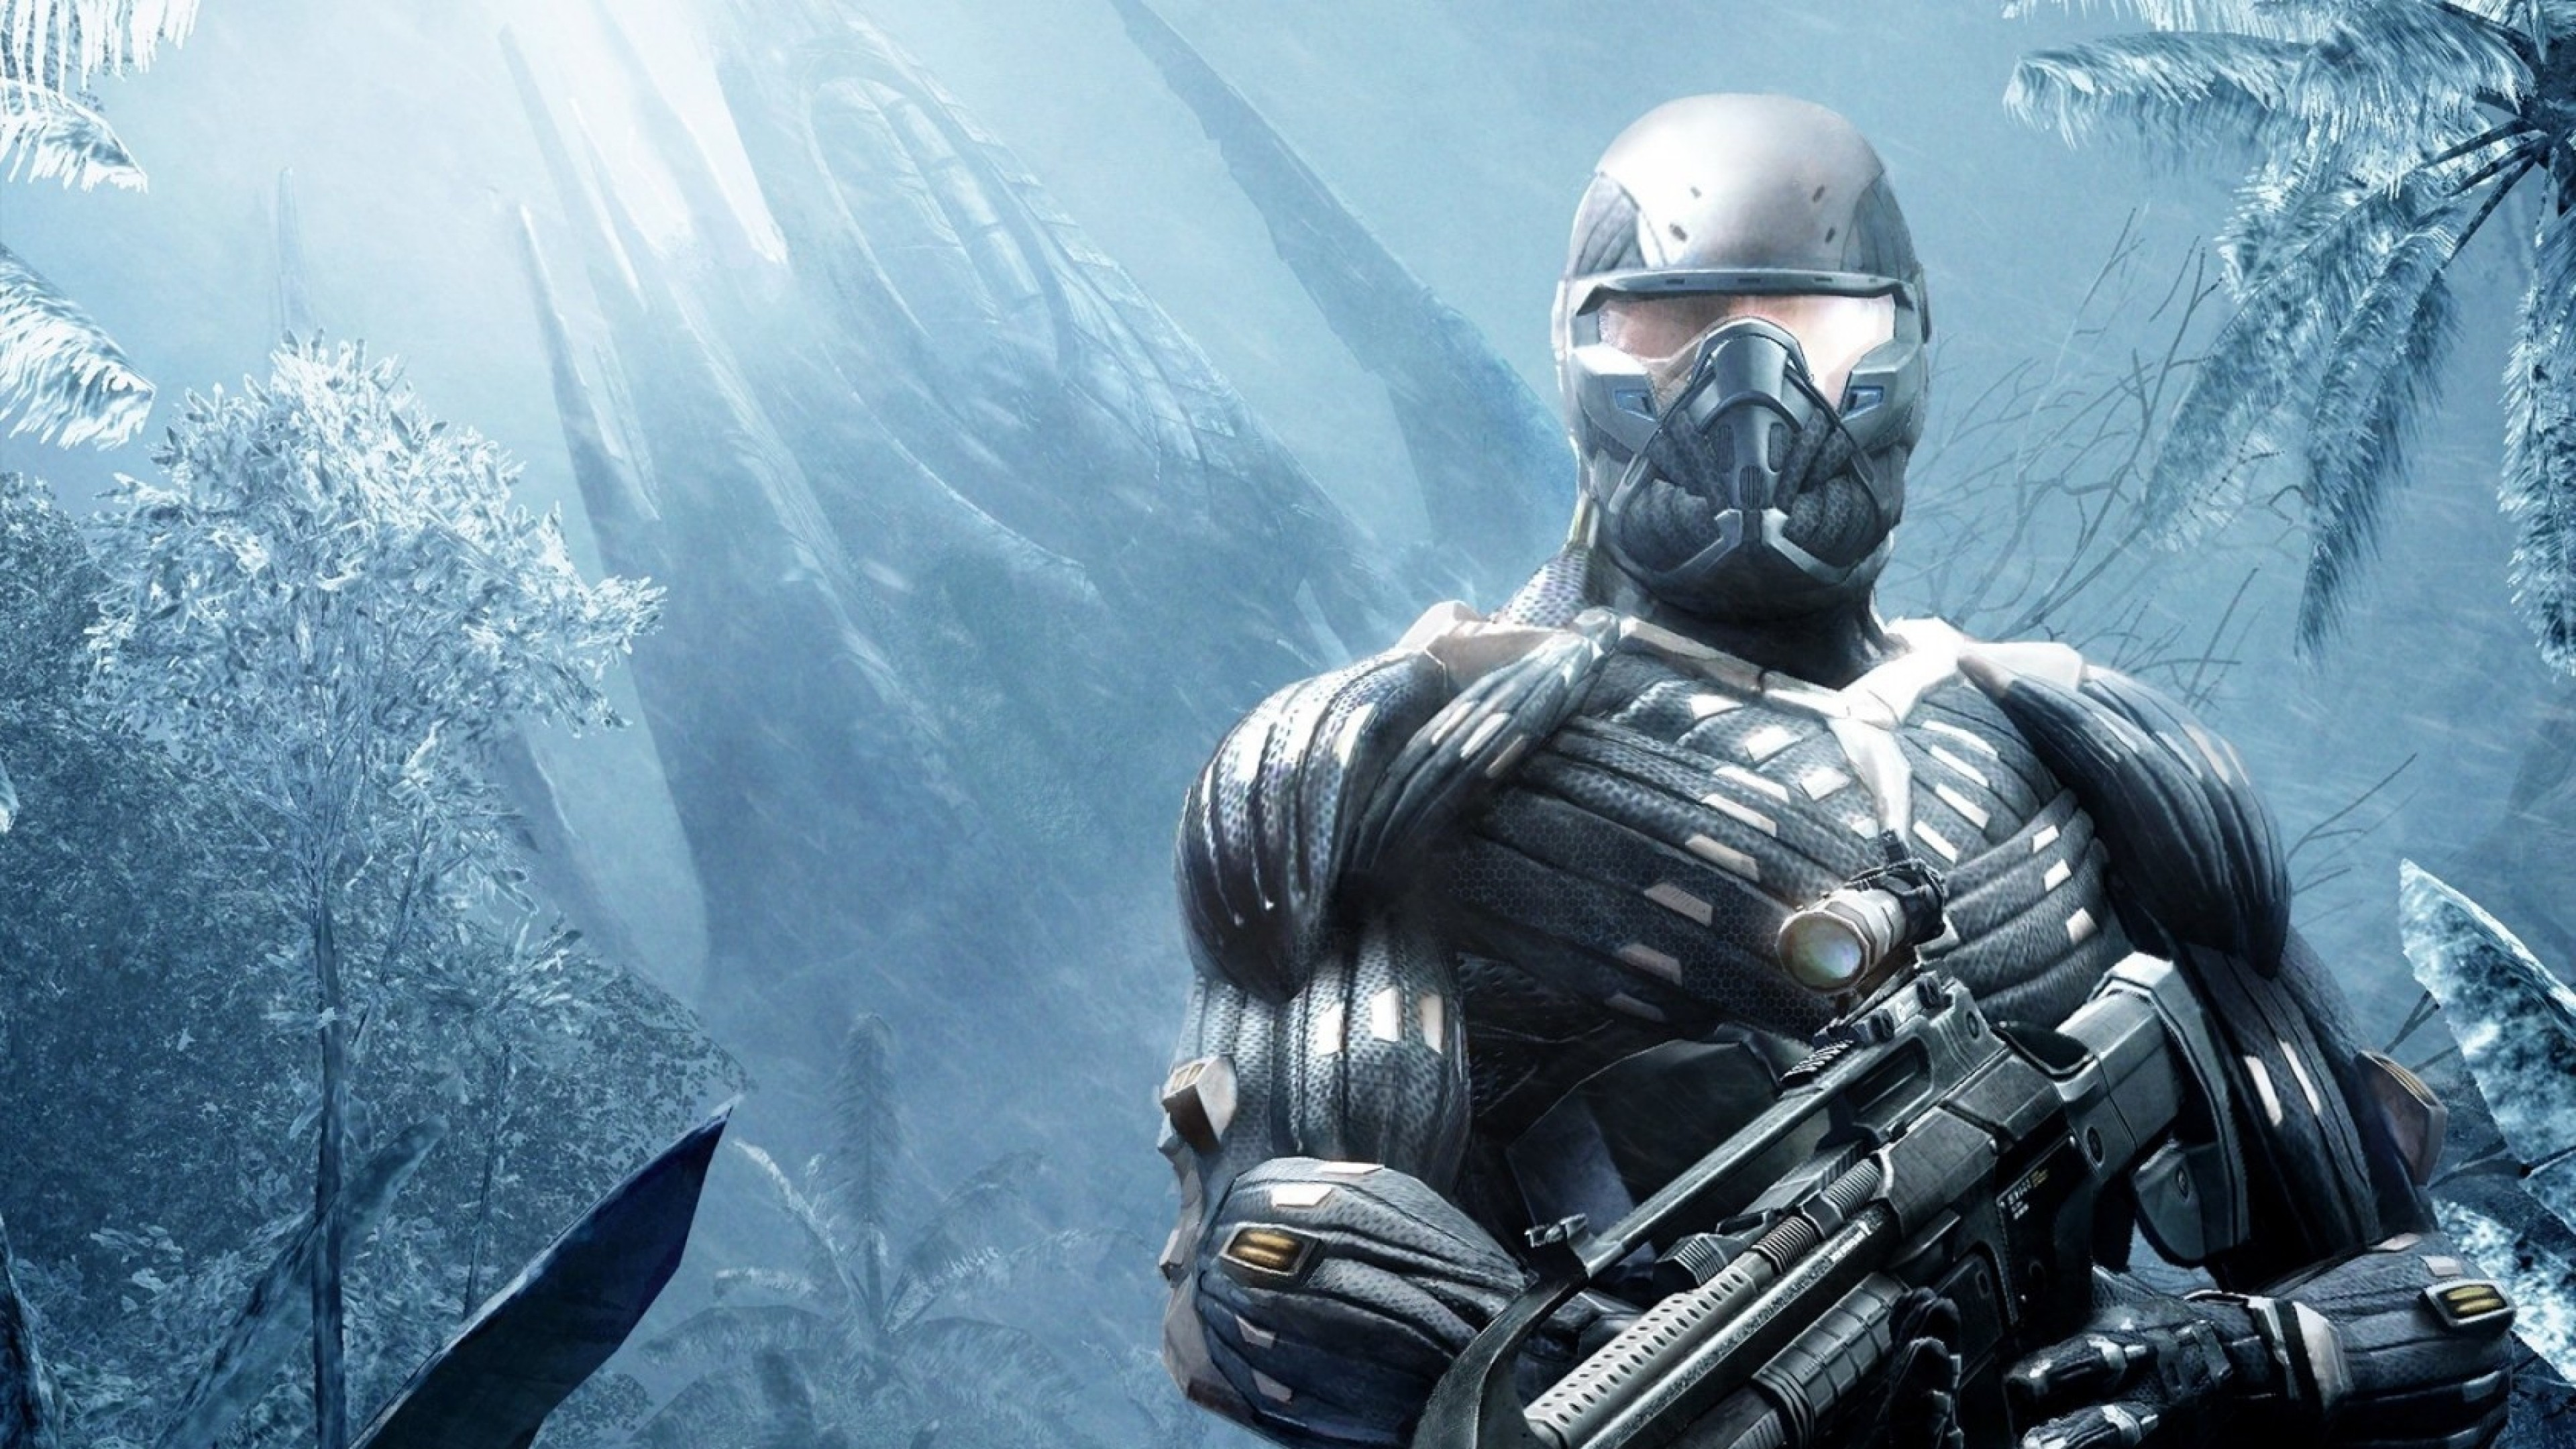 3840x2160 ... Crysis Wallpaper (43 Wallpapers) – Adorable Wallpapers ...